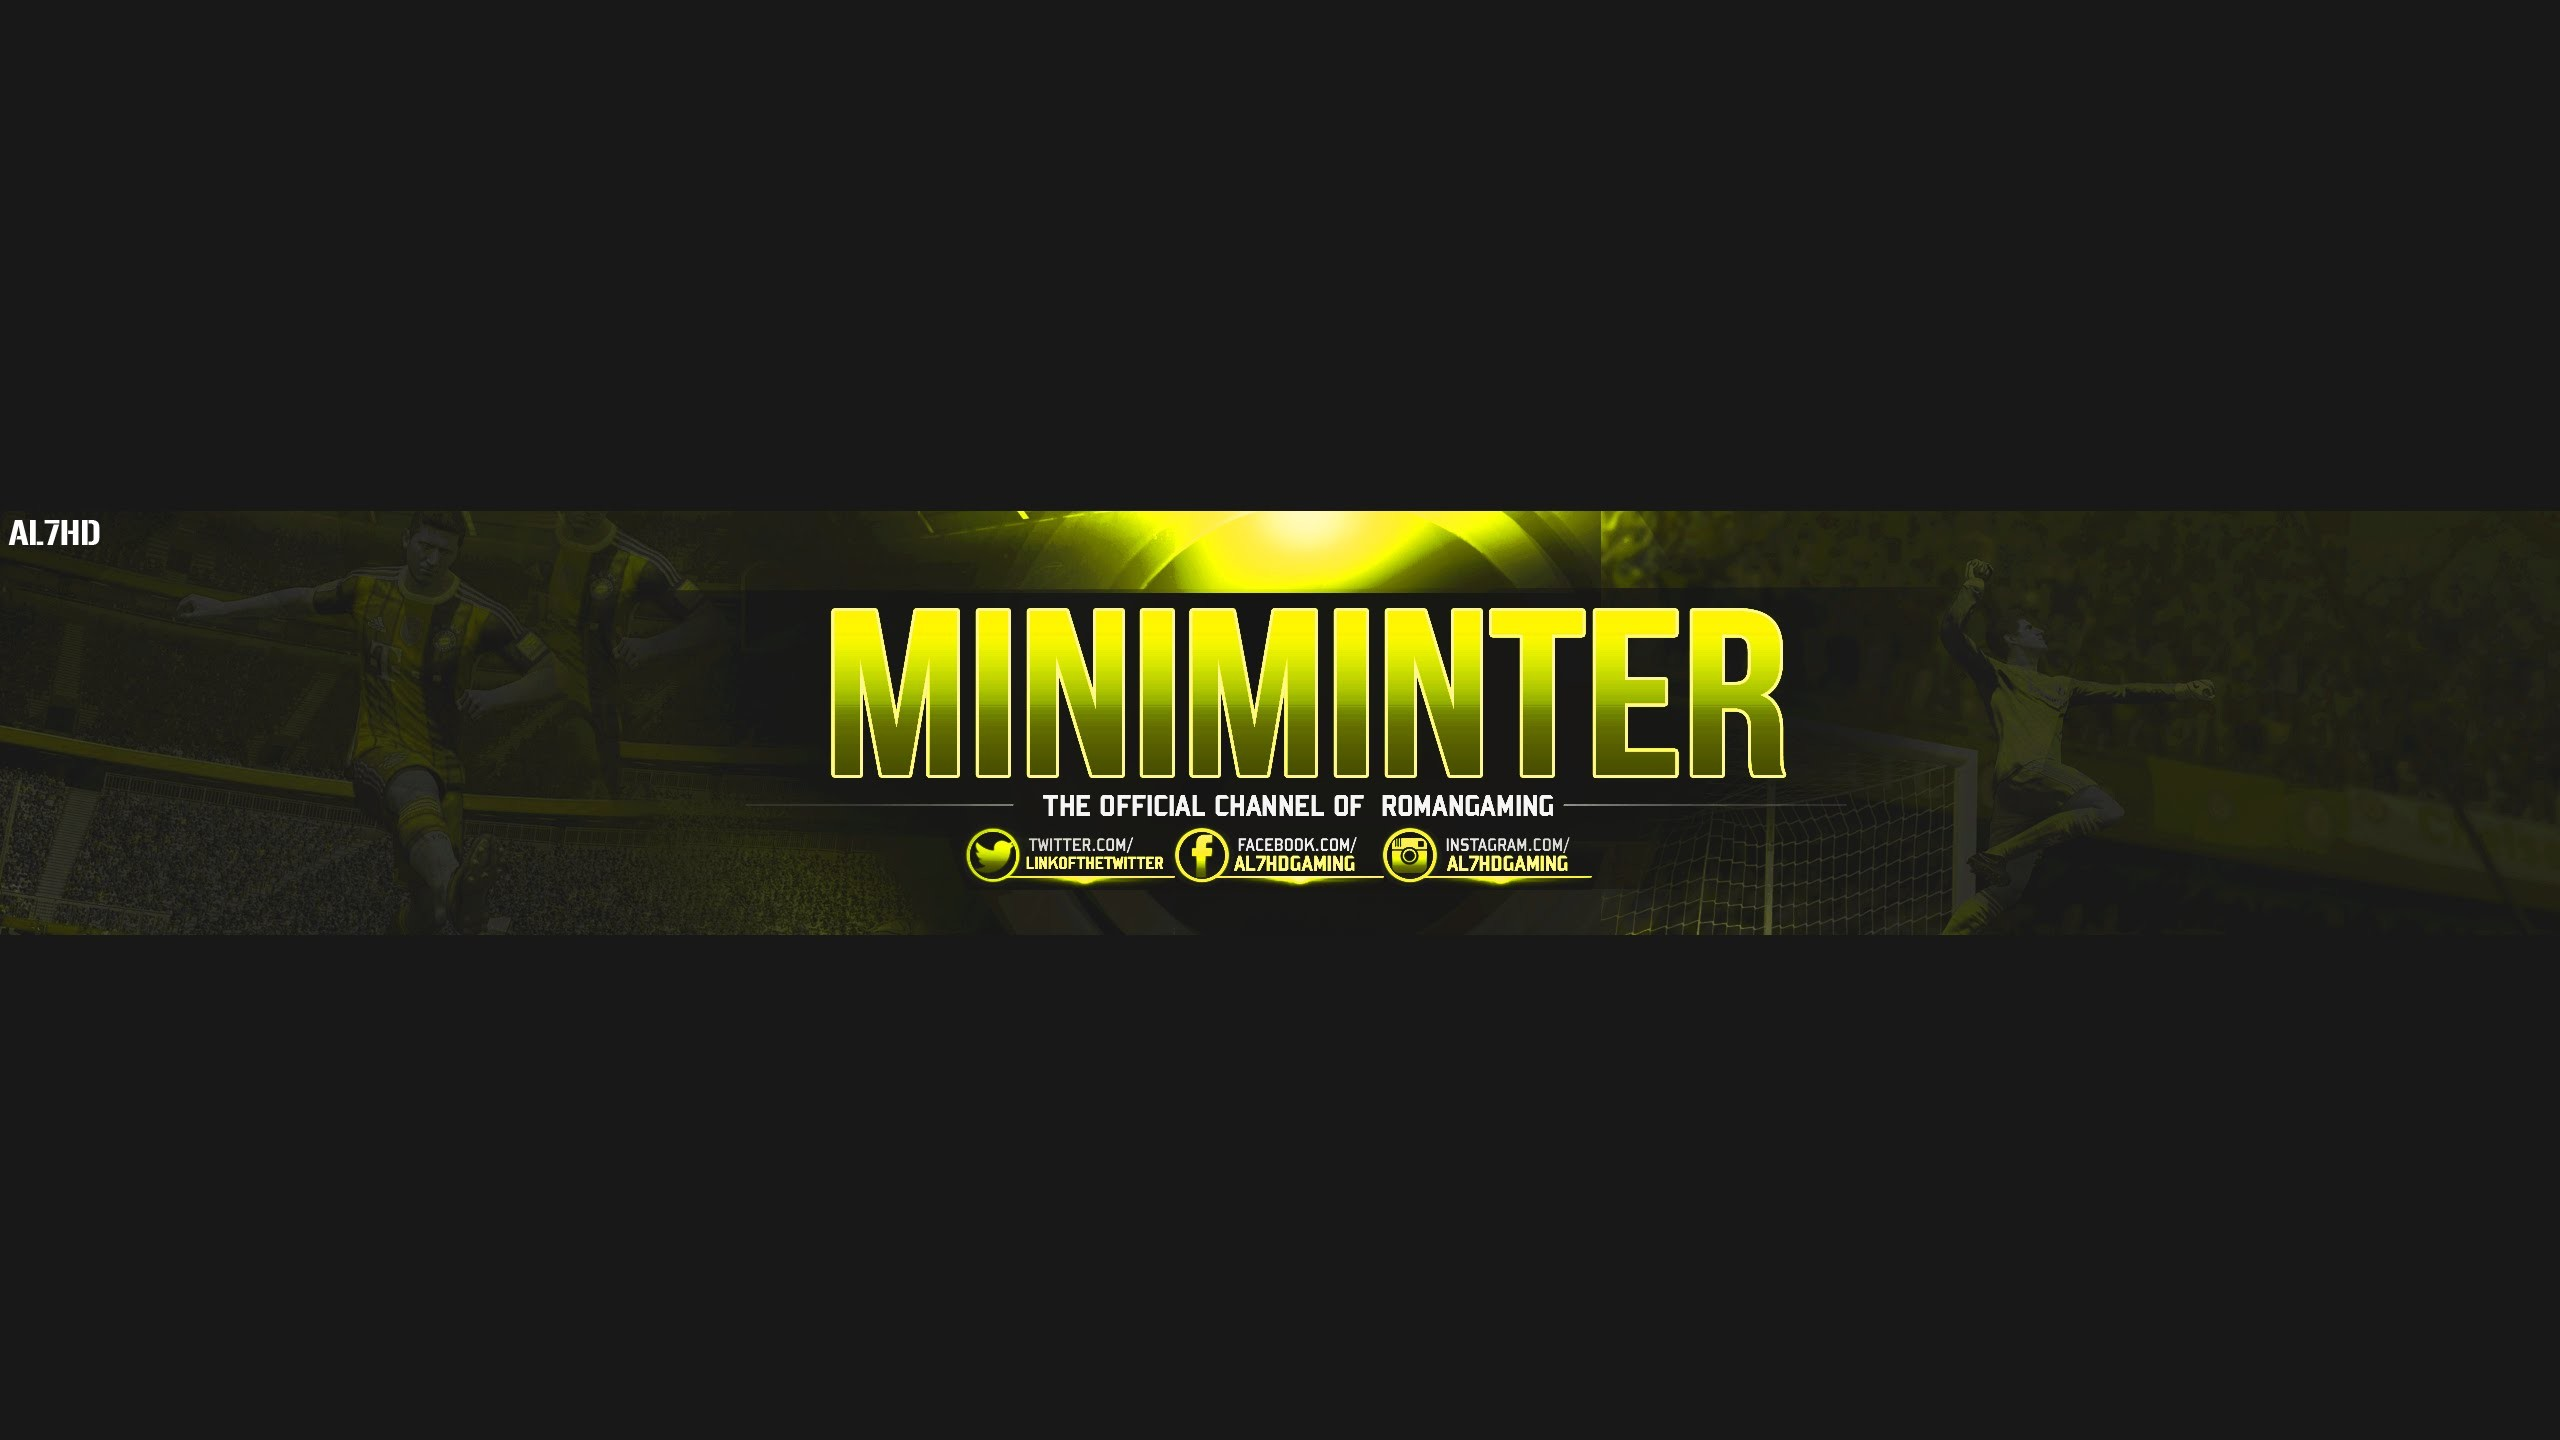 Free GFX: GAMING YOUTUBE BANNER TEMPLATE – FREE PSD FILE (2016/2017)  @miniminter7 – YouTube